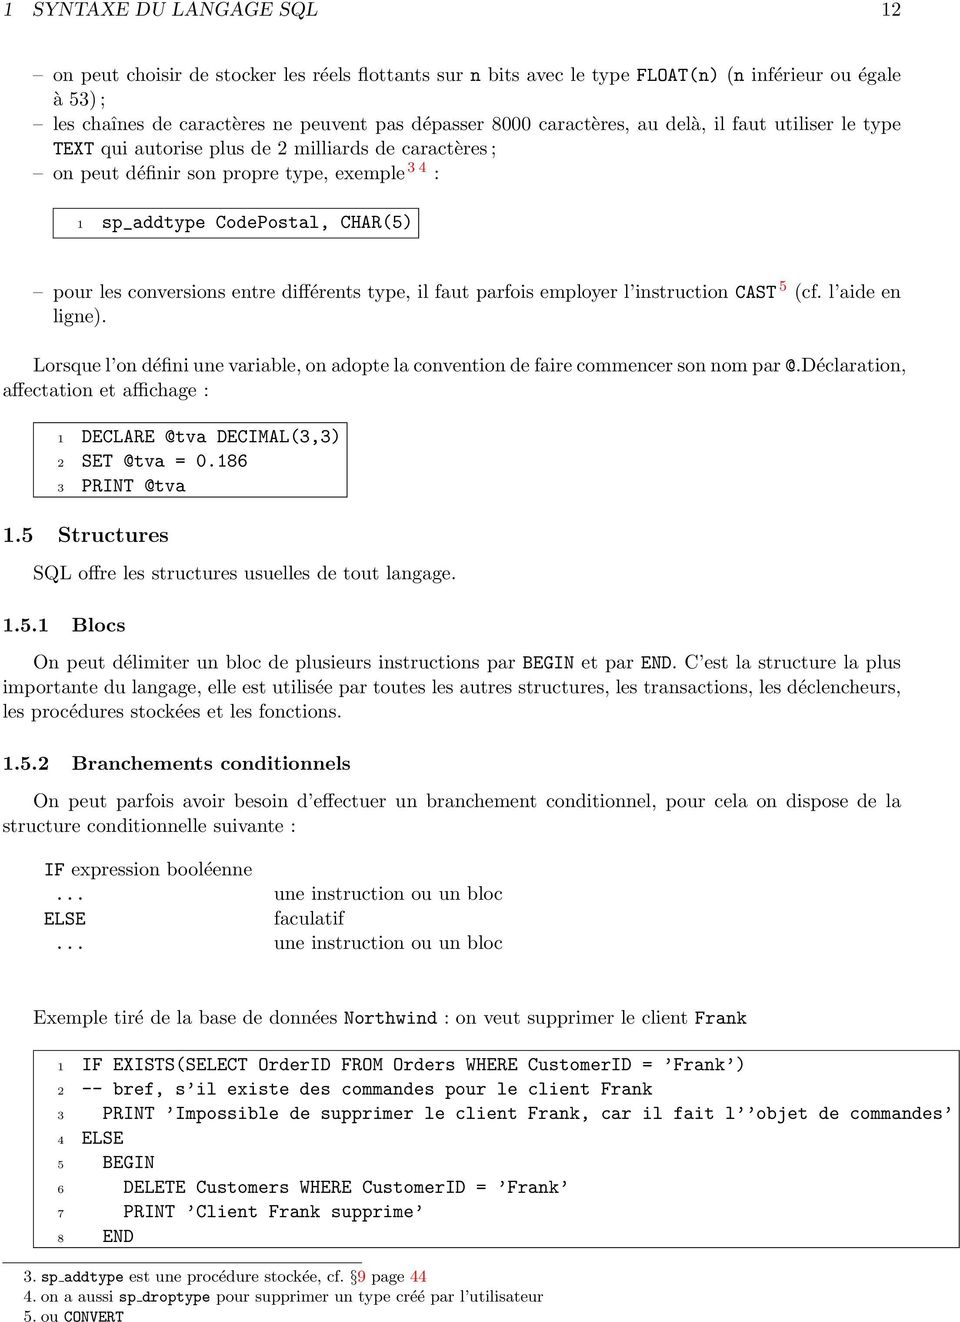 conversions entre différents type, il faut parfois employer l instruction CAST 5 (cf. l aide en ligne). Lorsque l on défini une variable, on adopte la convention de faire commencer son nom par @.